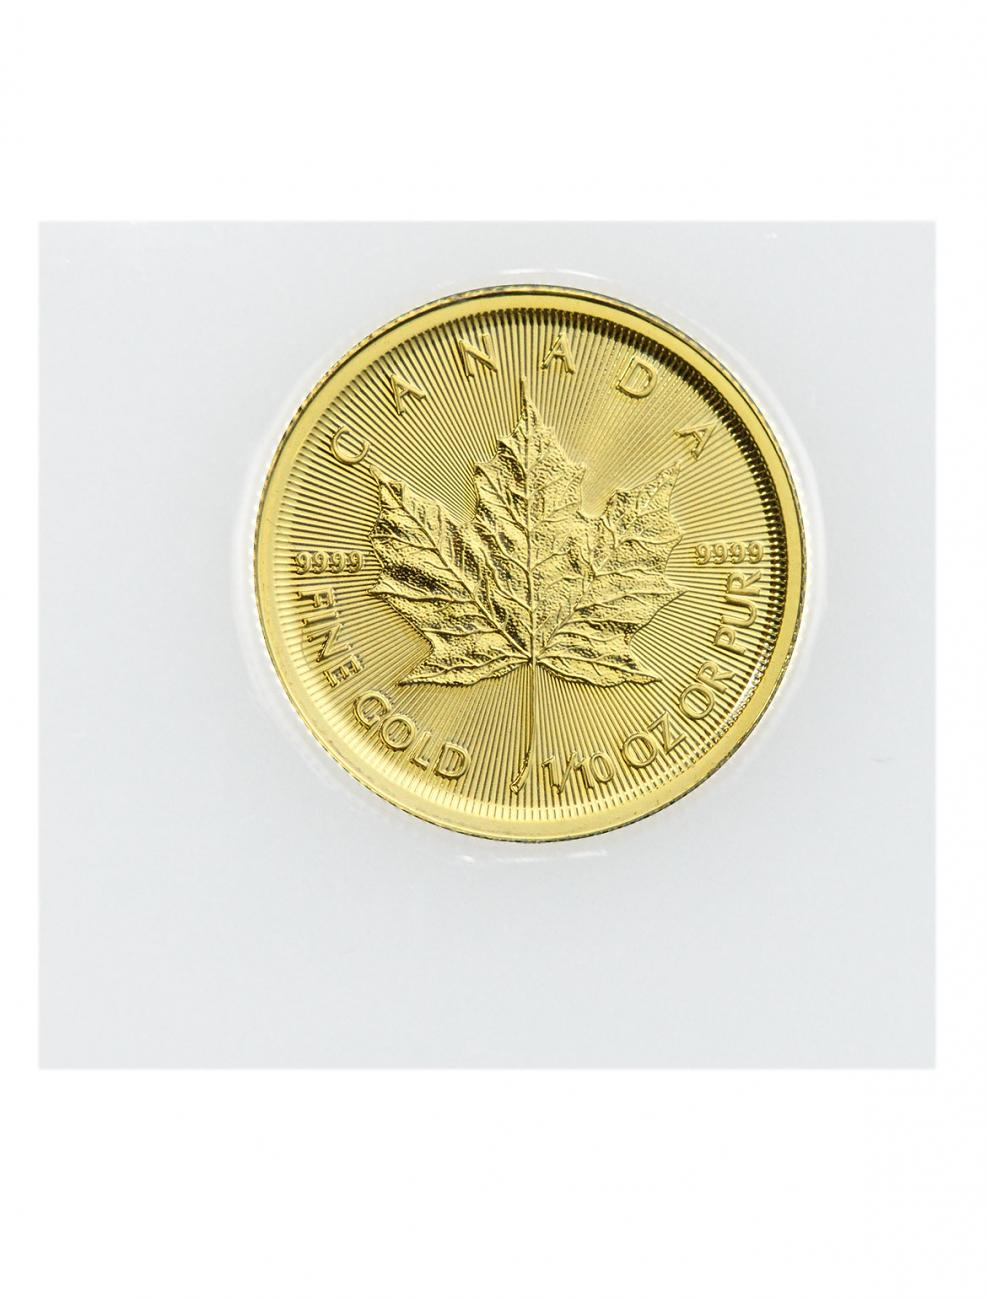 2019 Canada 1/10 oz Gold Maple Leaf $5 Coin GEM BU Mint Sealed